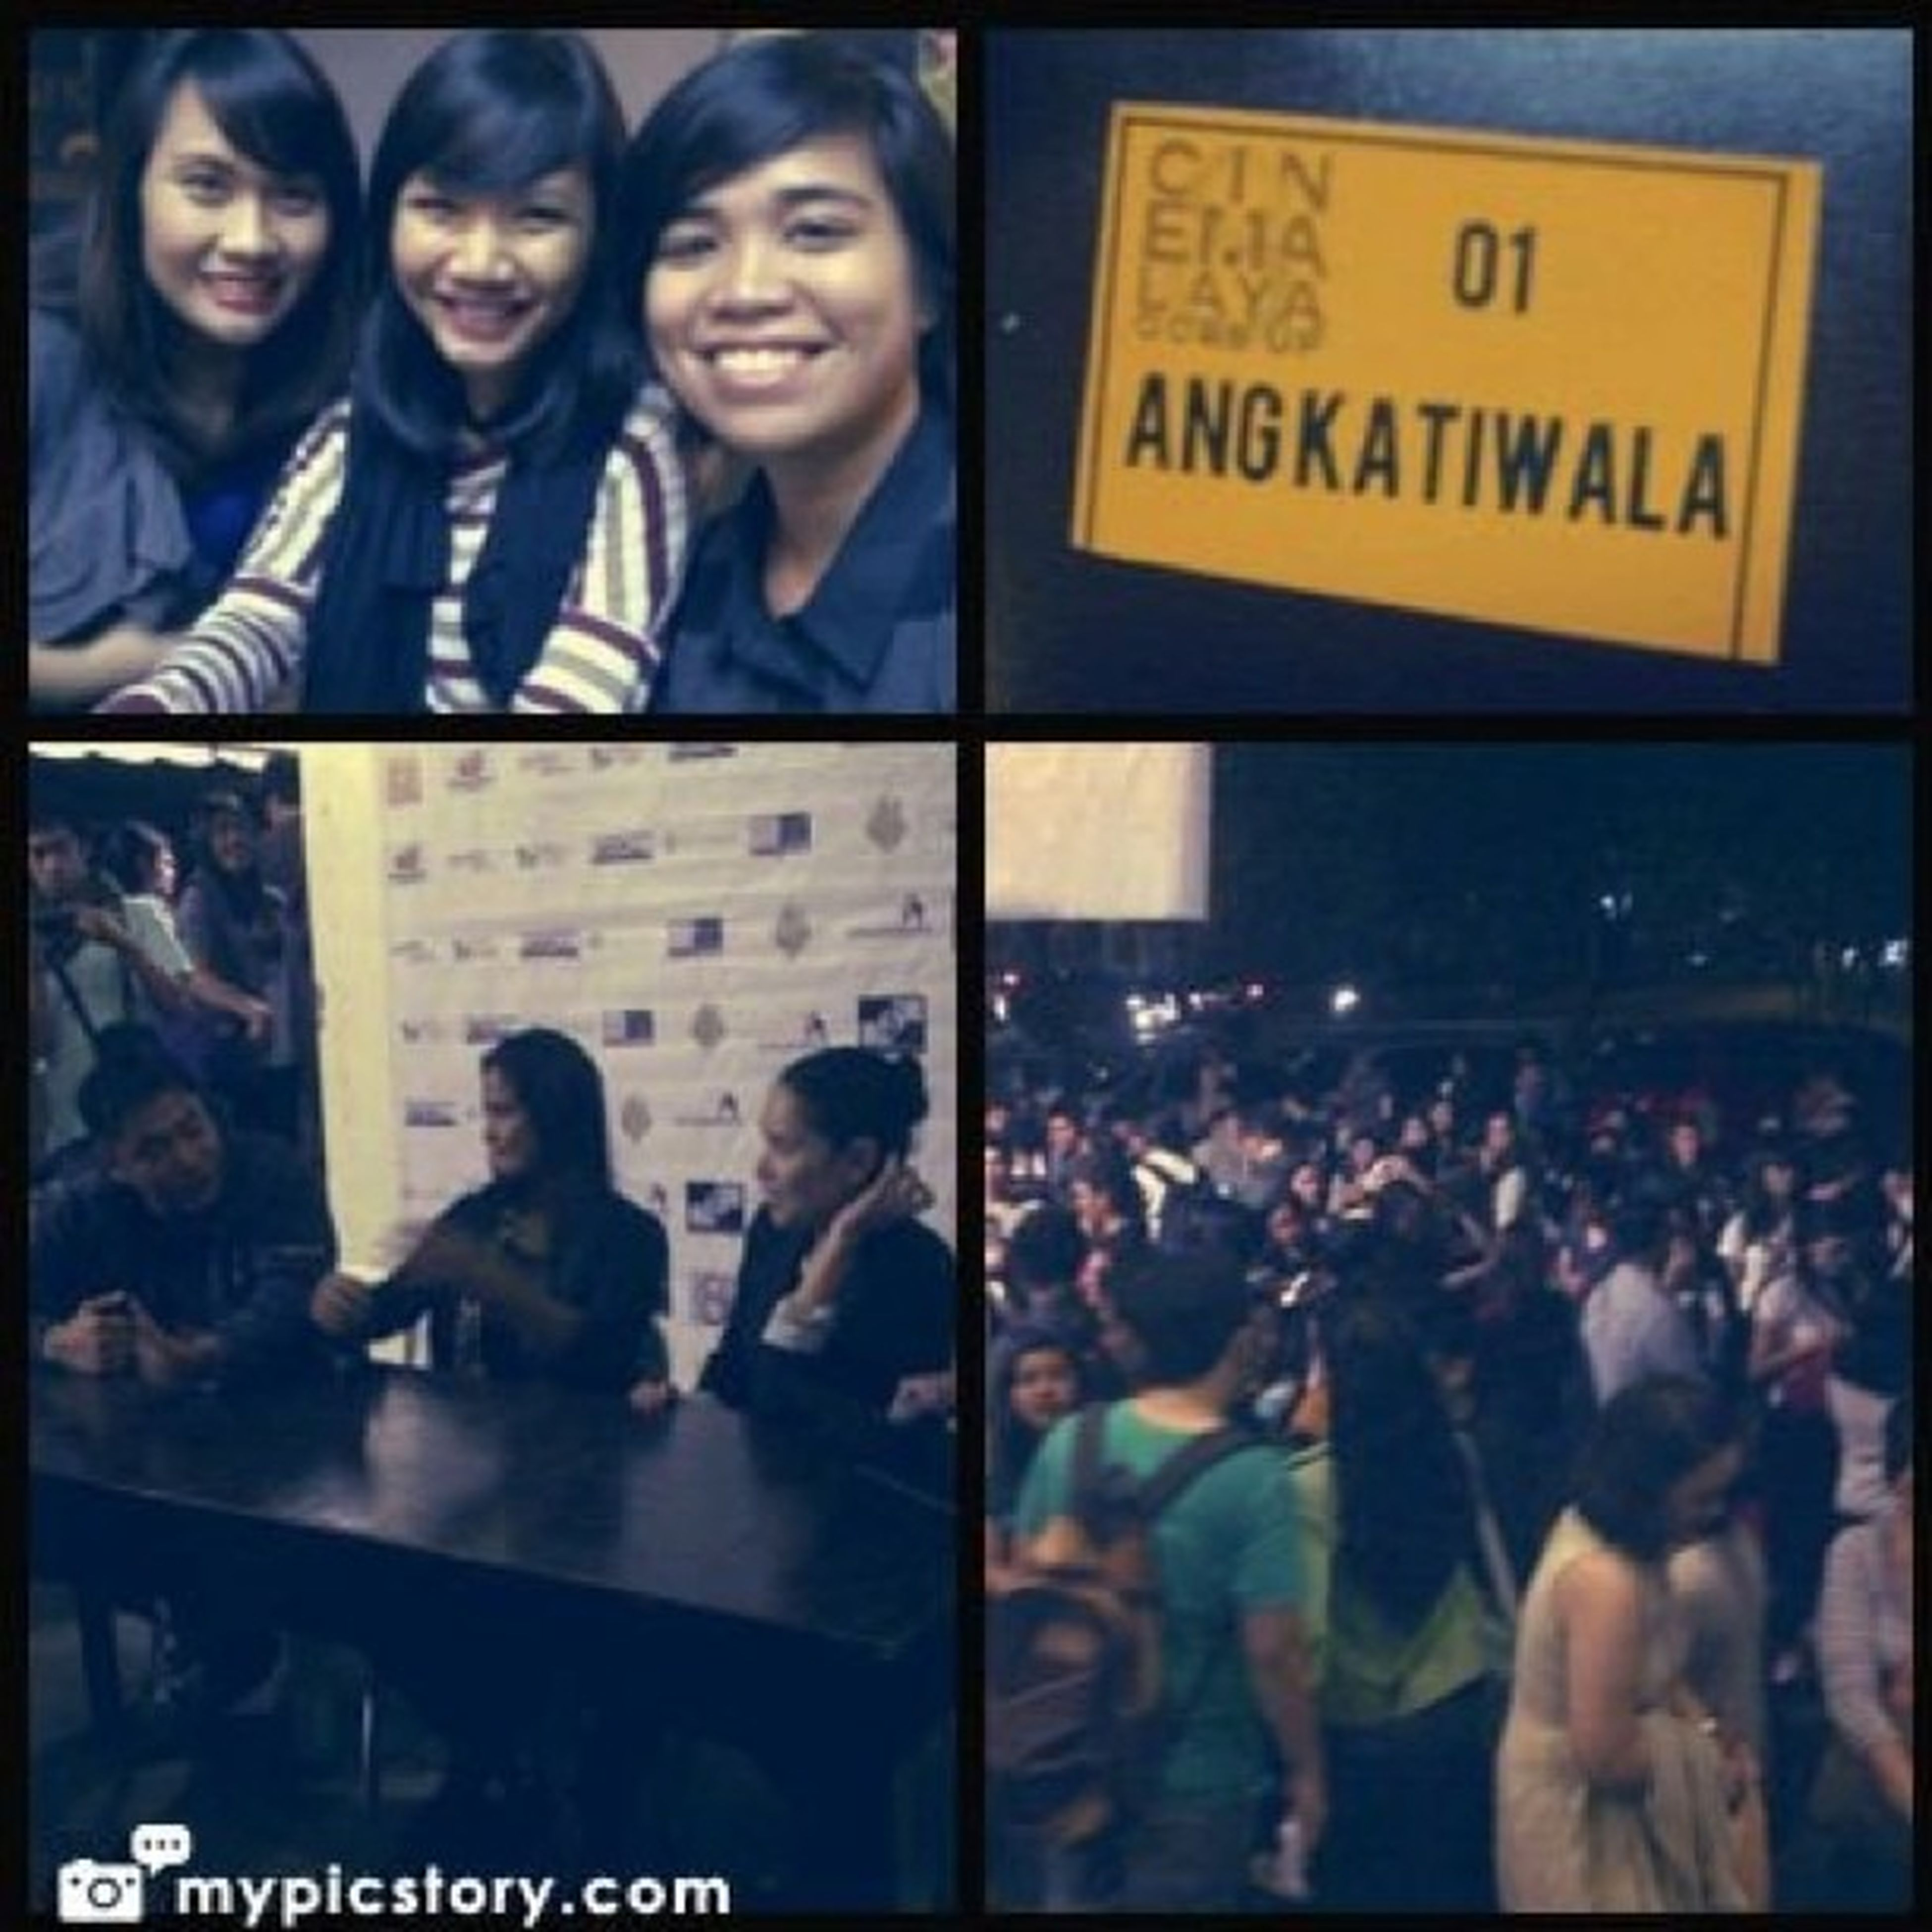 The Cinemalaya experience. Watched Ang Katiwala. Good film! Kudos to the prod team  Cinemalaya AngKatiwala Instagram